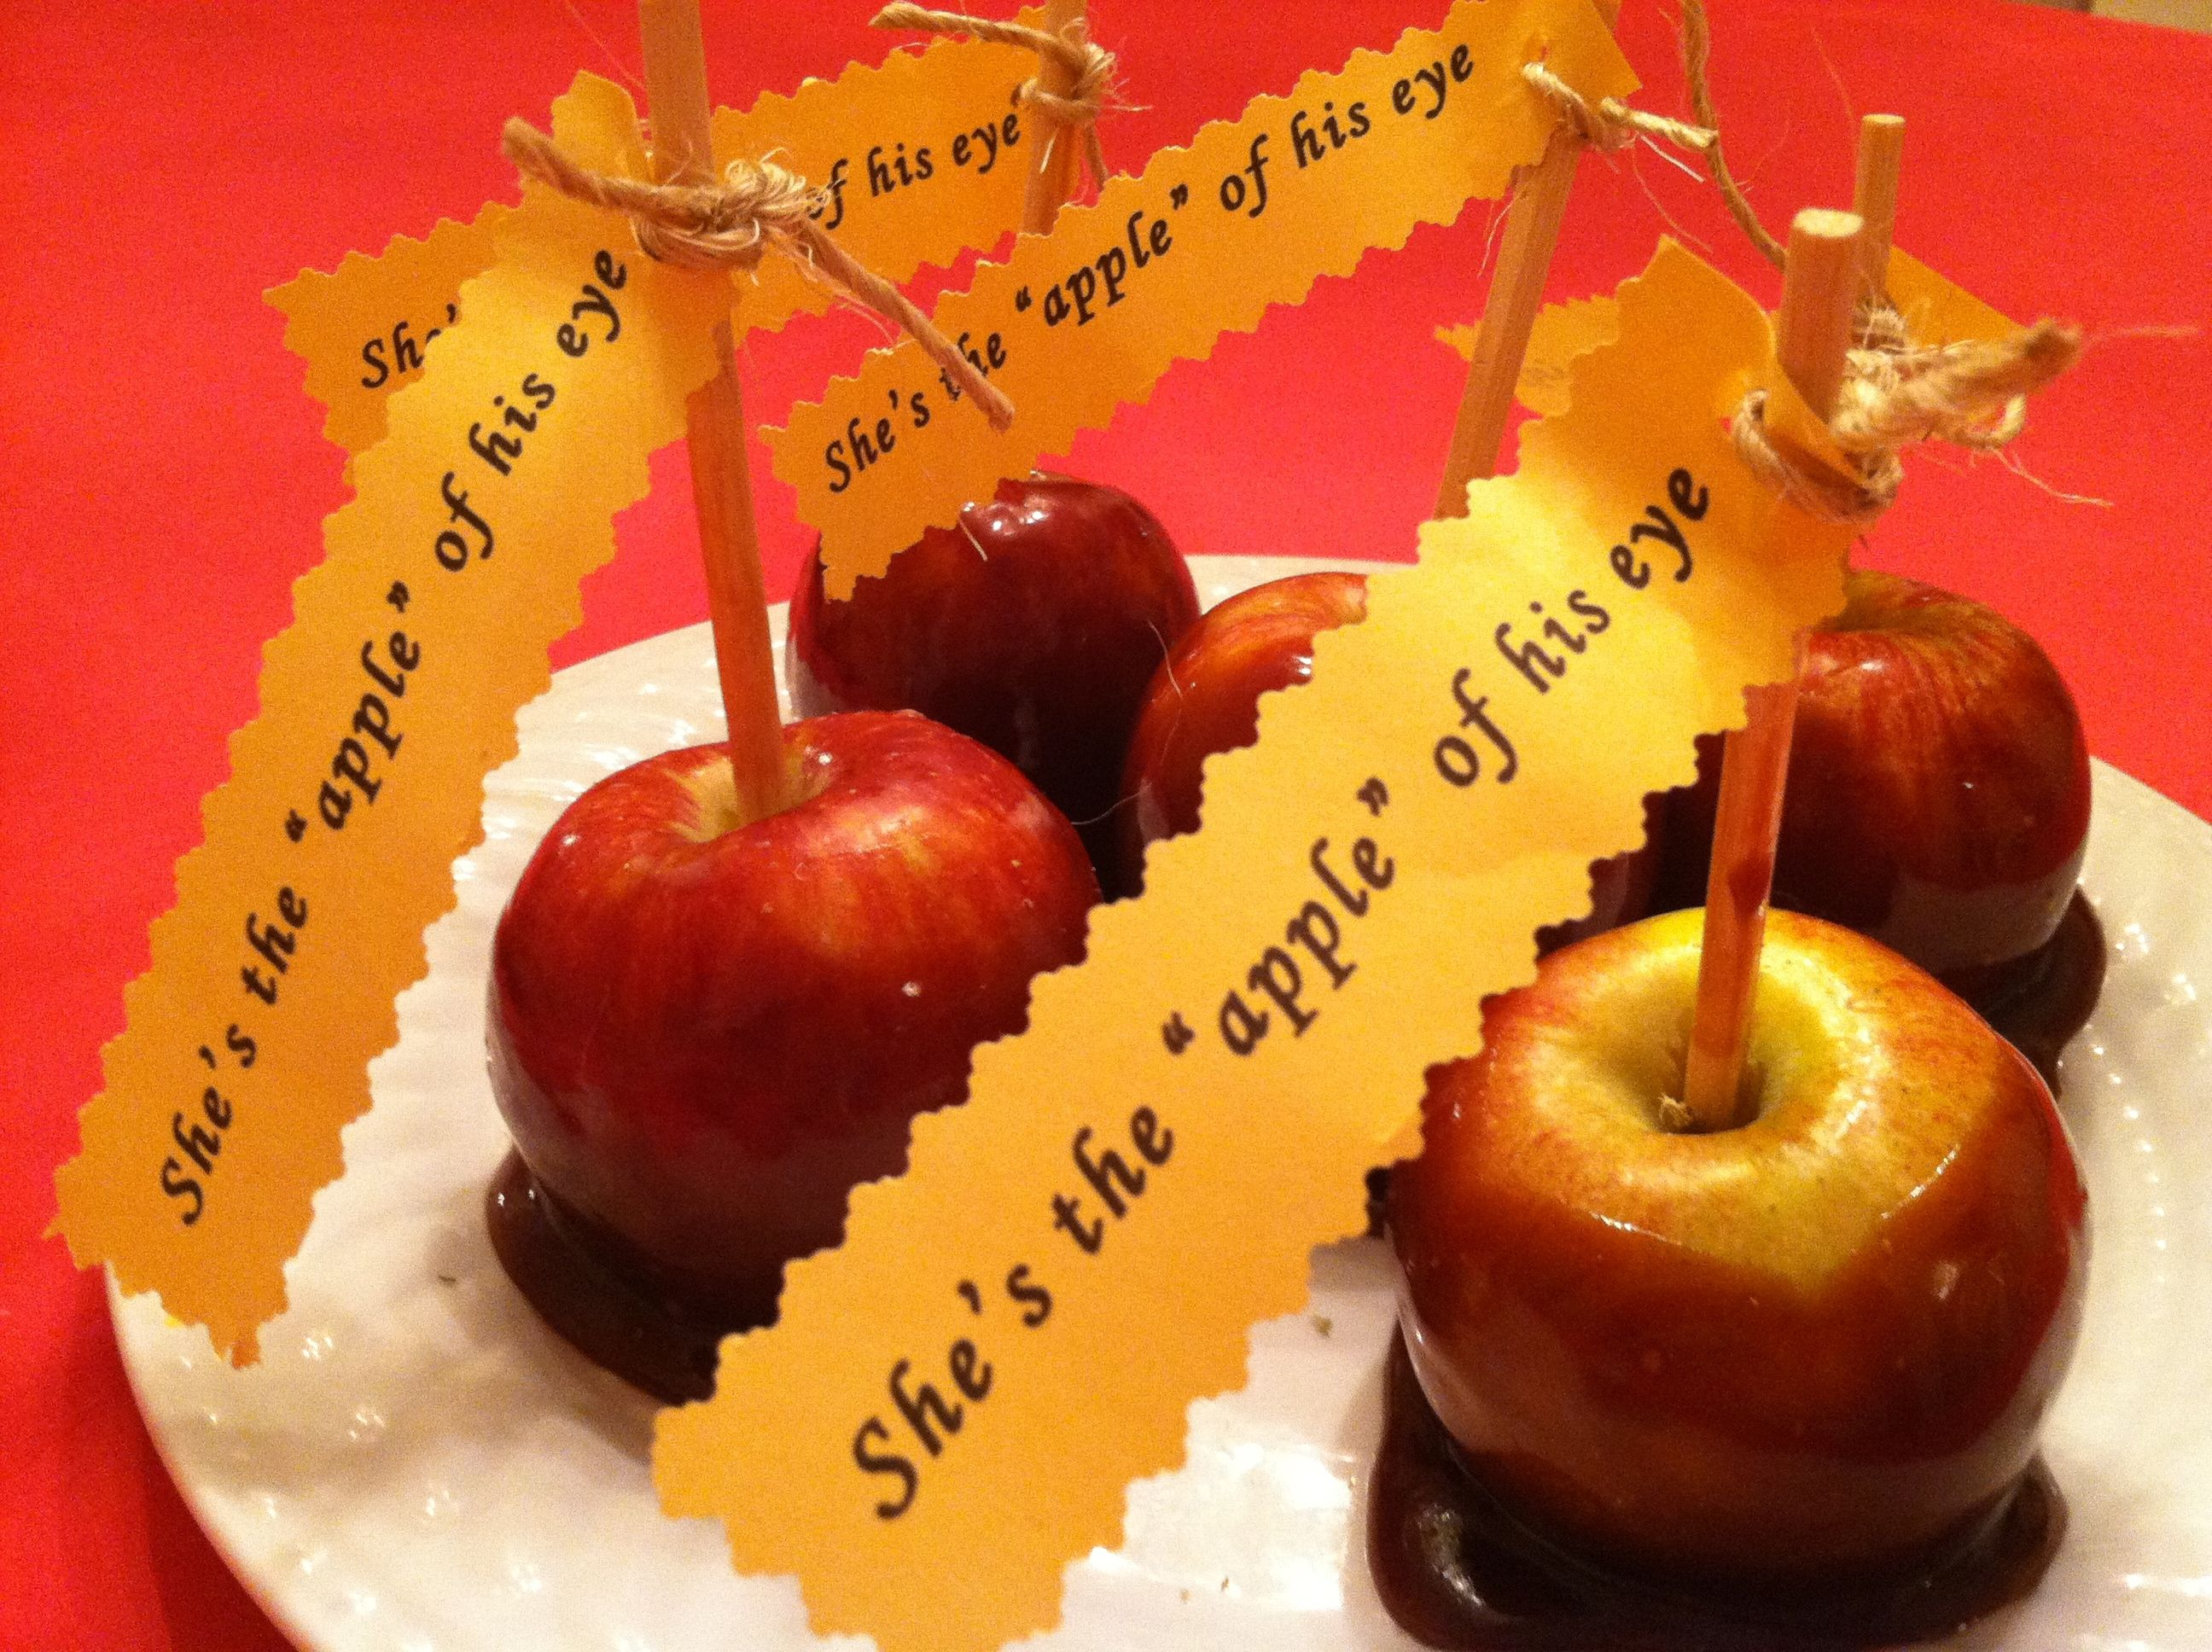 'She's the apple of his eye!' Sweet treat for a Fall wedding or Engagement party...easy and yummy caramel apple recipe #engagementparty